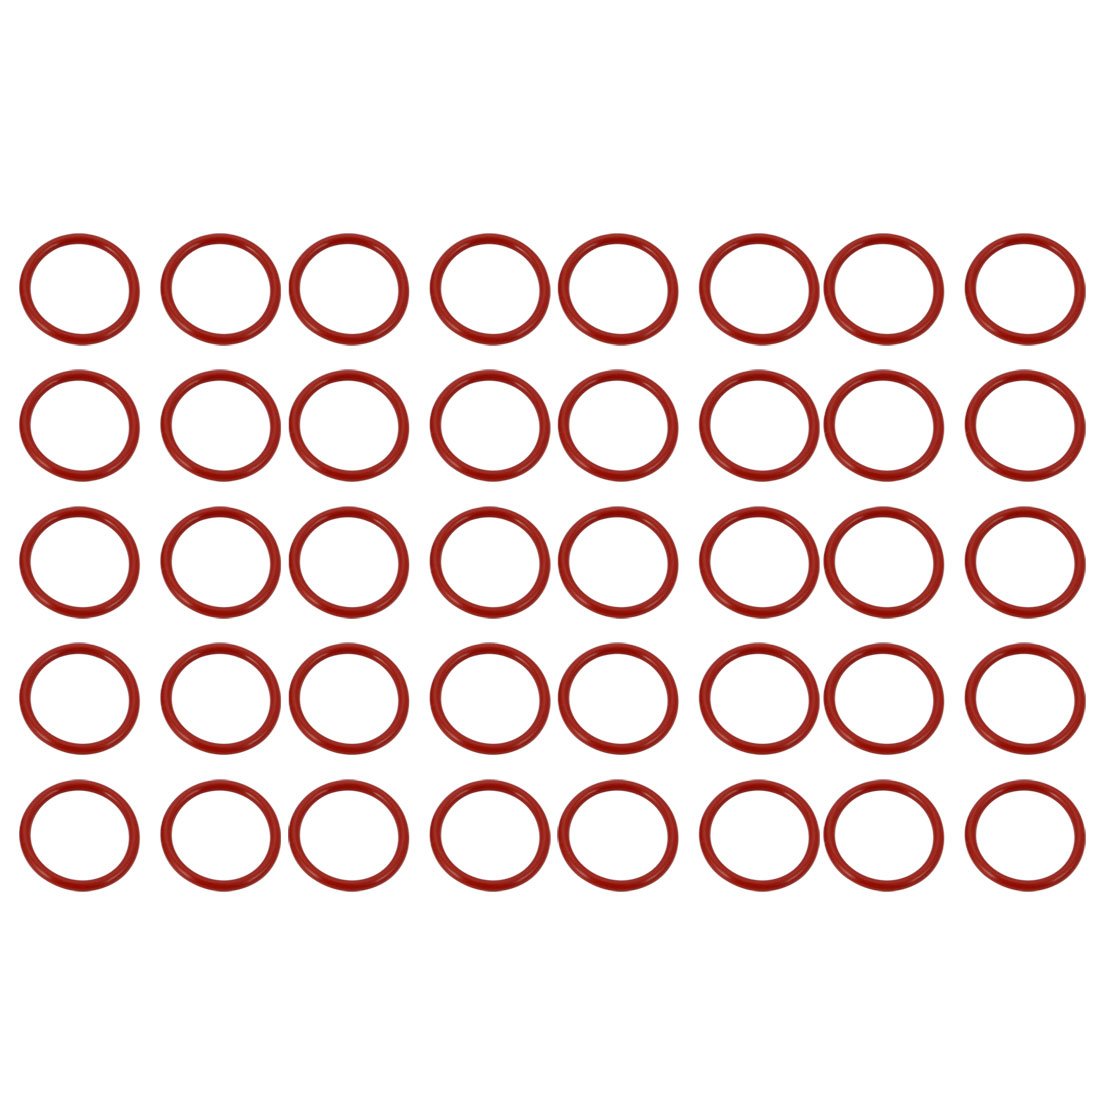 40pcs Red 17mm Outer Dia 1.5mm Thickness Sealing Ring O-shape Rubber Grommet - image 2 of 2